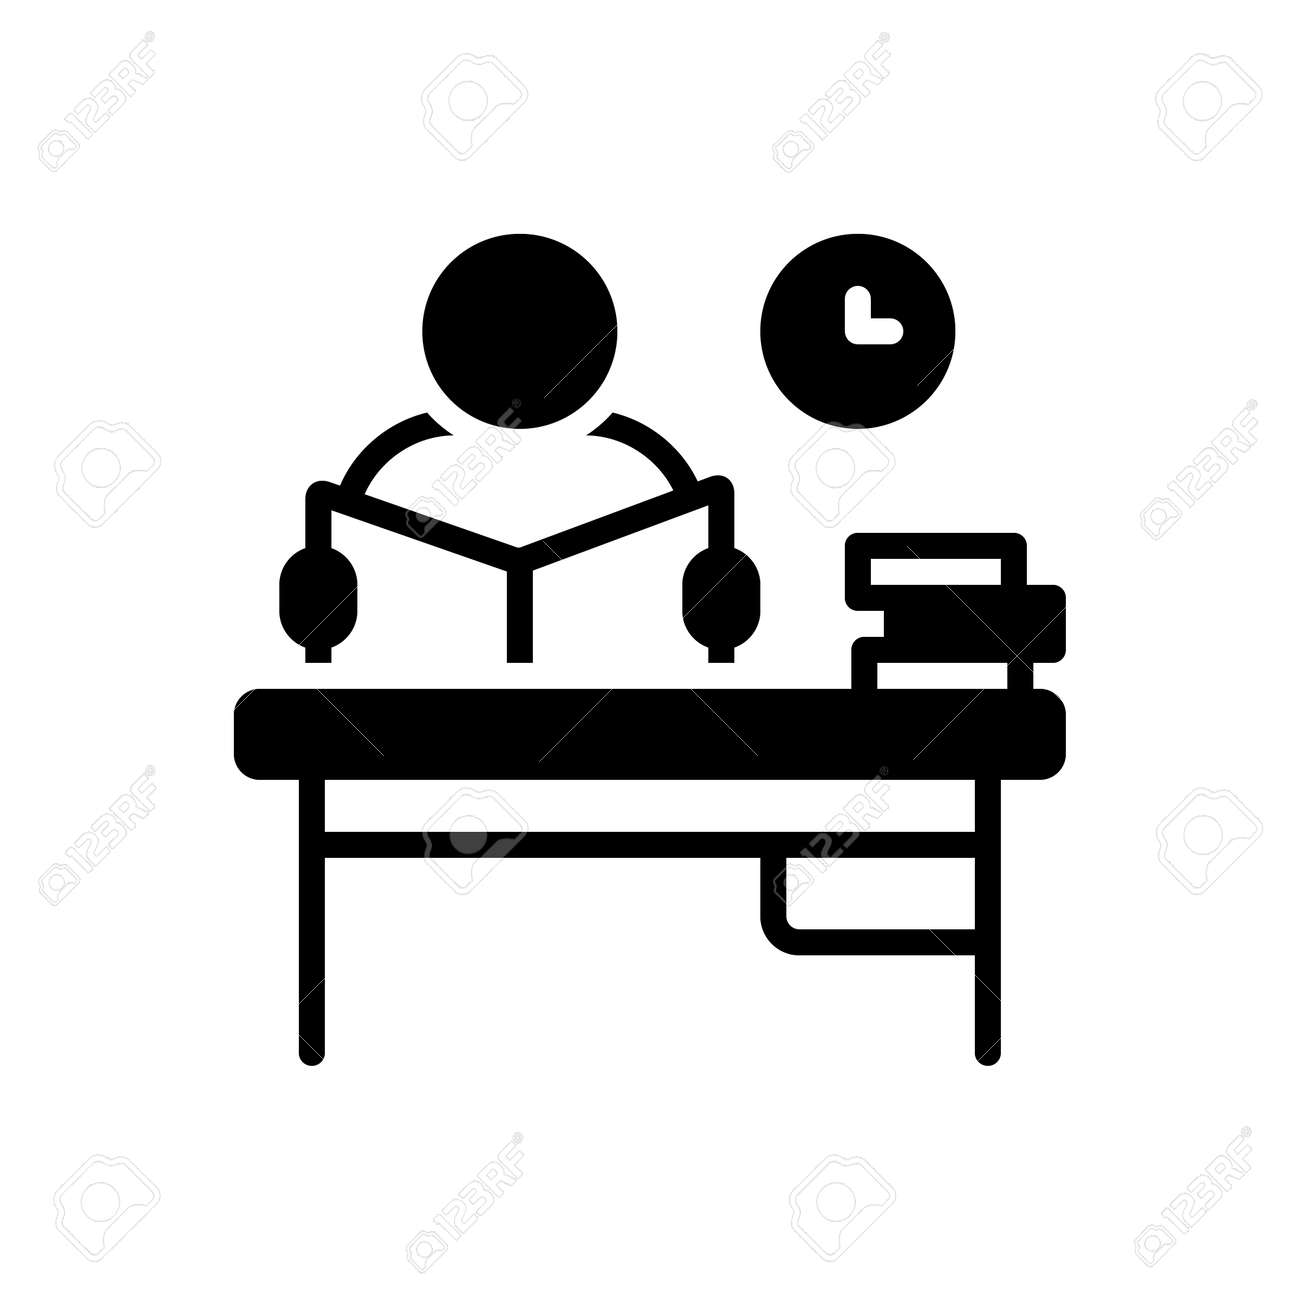 Icon for study,perusal - 172215091